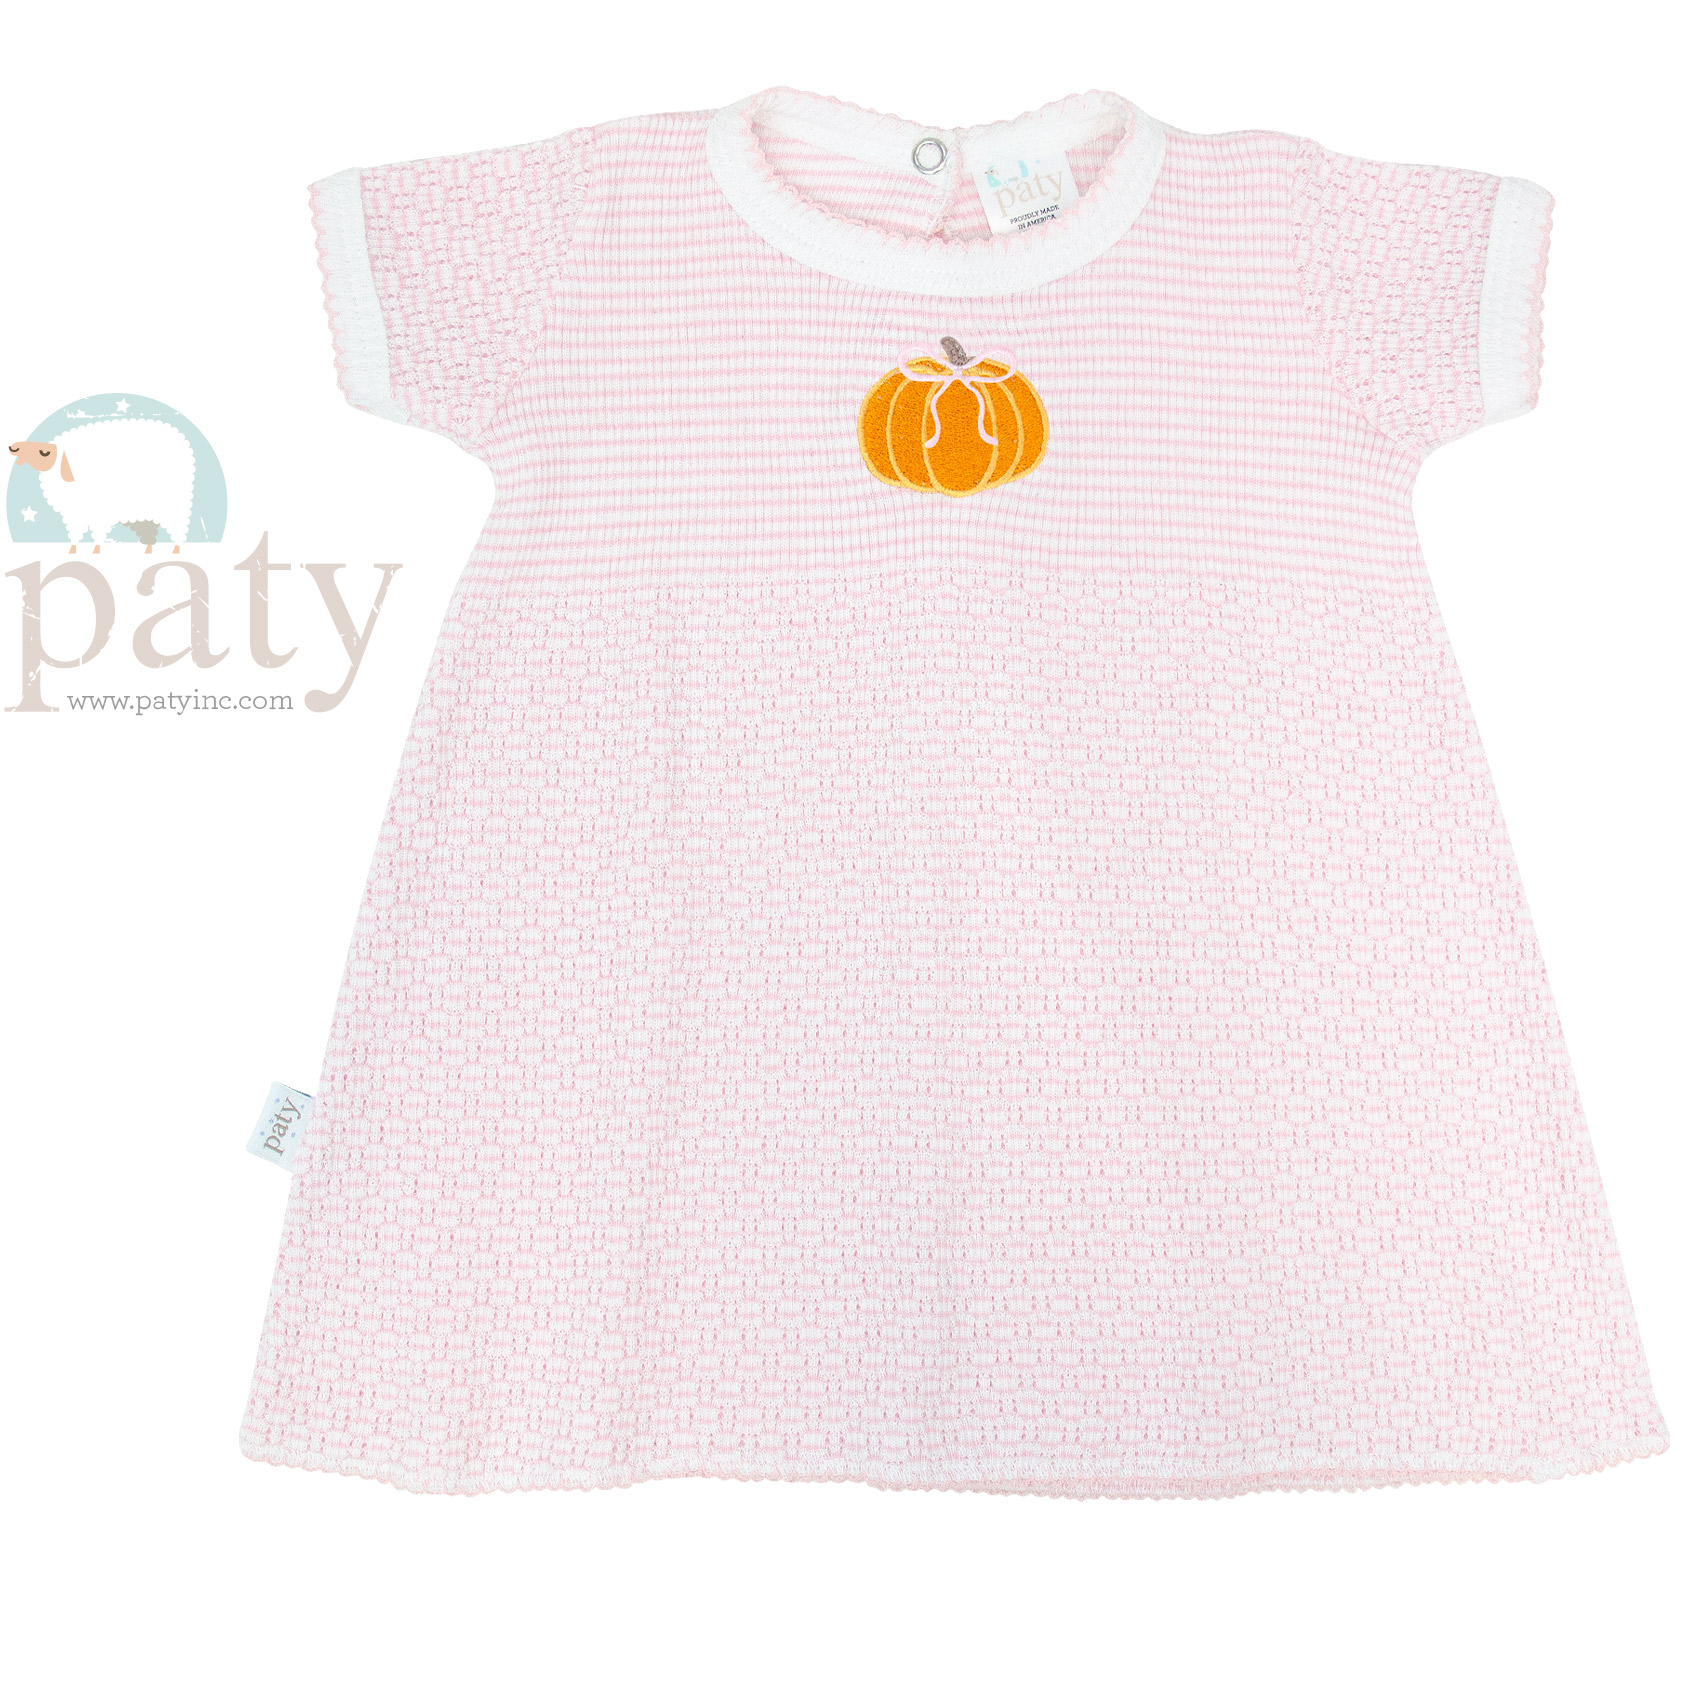 Solid Color Knit Dress w/ Pumpkin Embroidery//